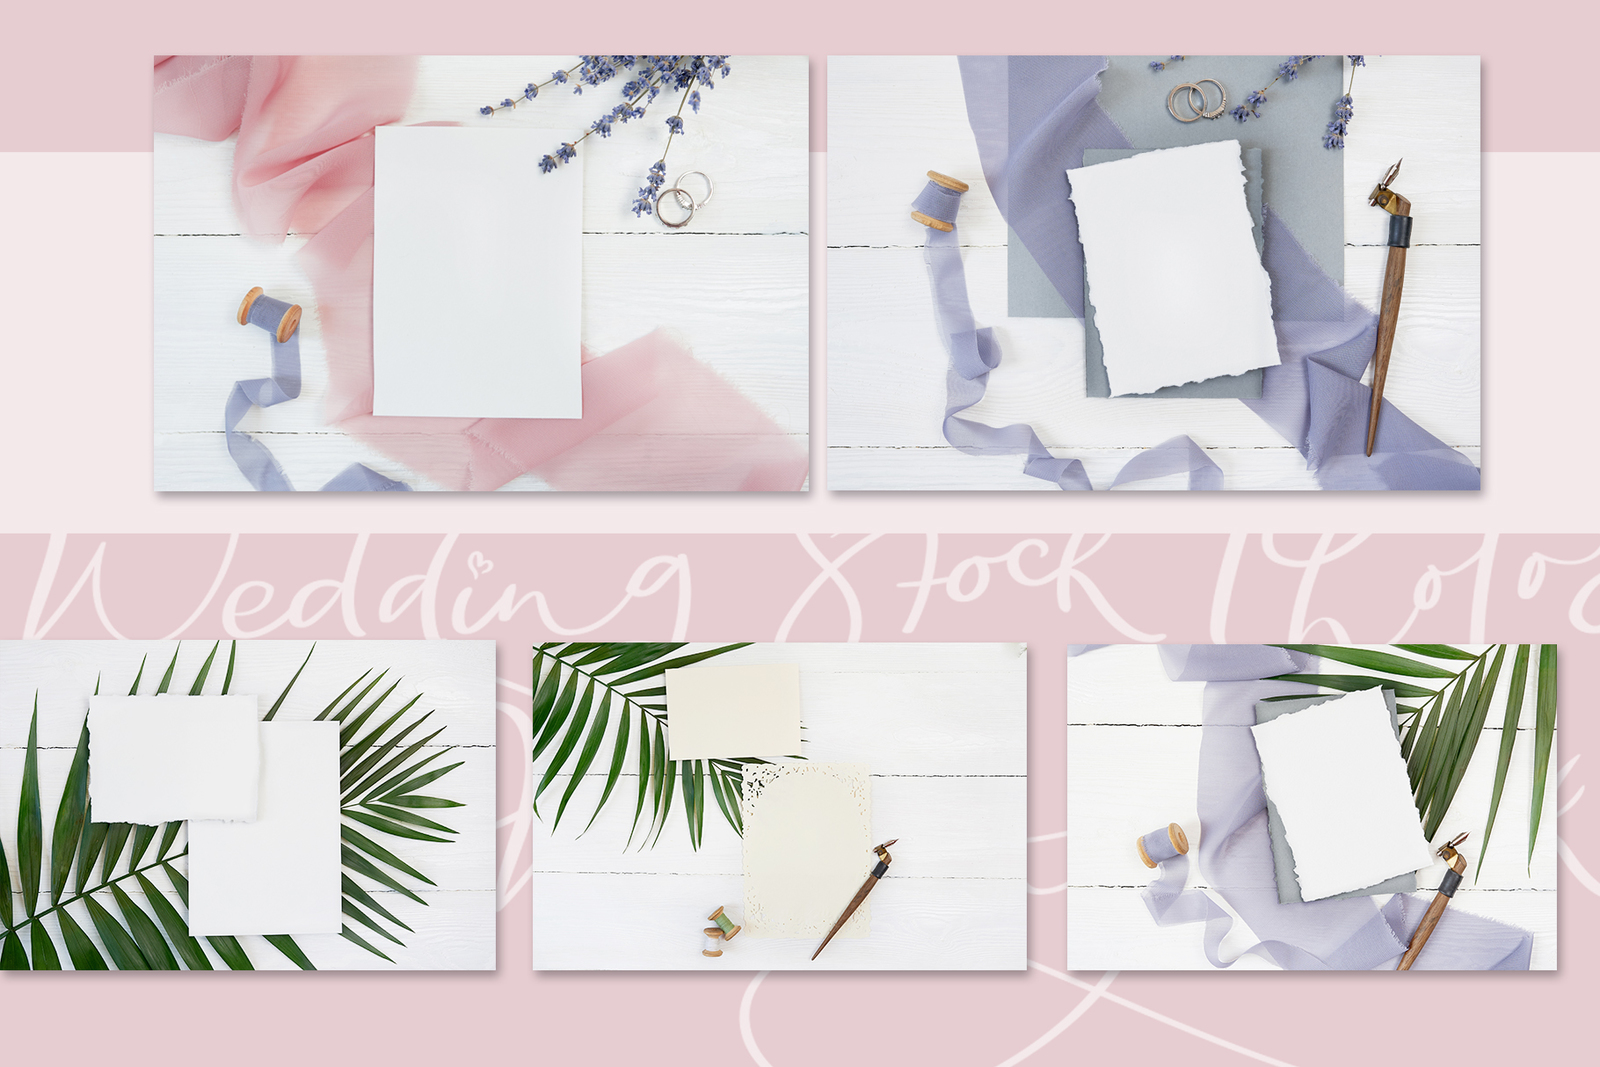 Wedding stock photo bundle